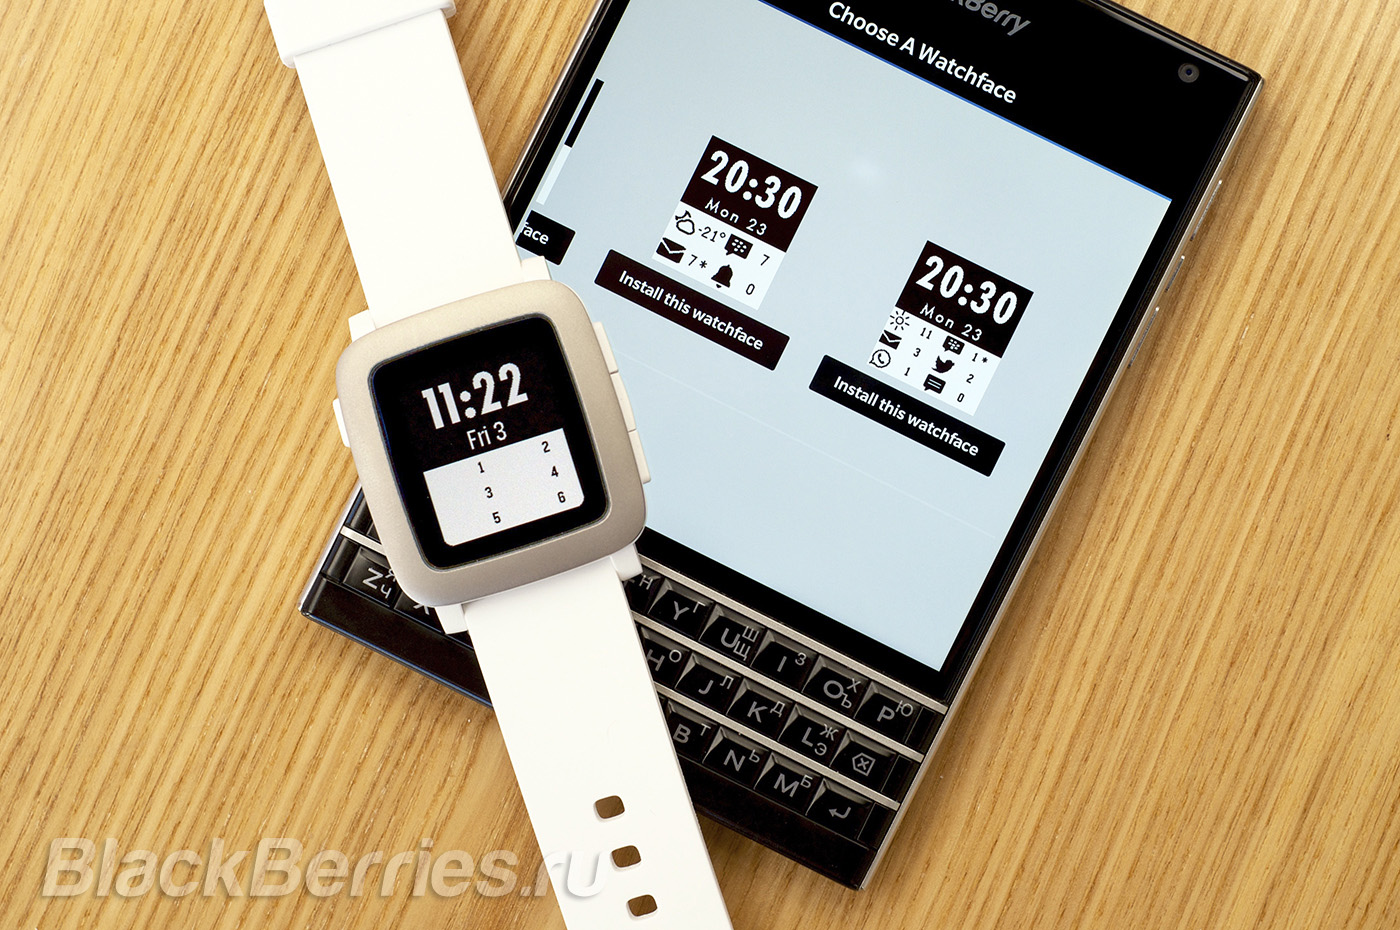 BlackBerry-Passport-Pebble-Time-52